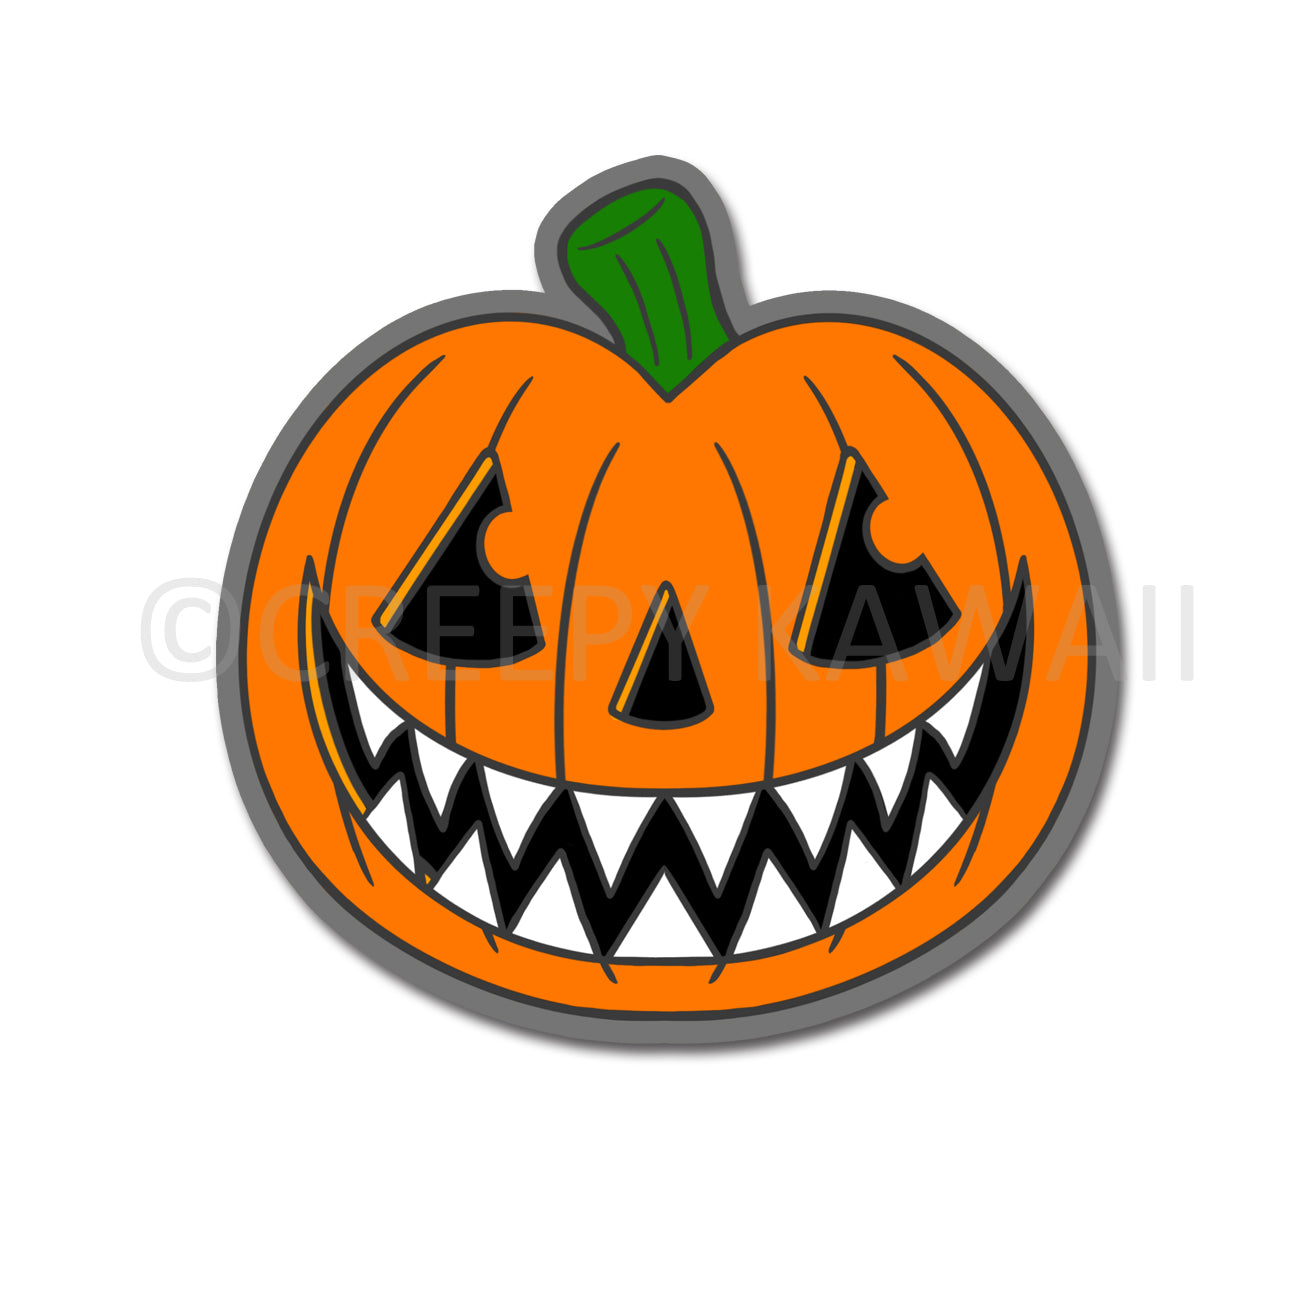 Pumpkin - 3 Inch Weatherproof Vinyl Sticker